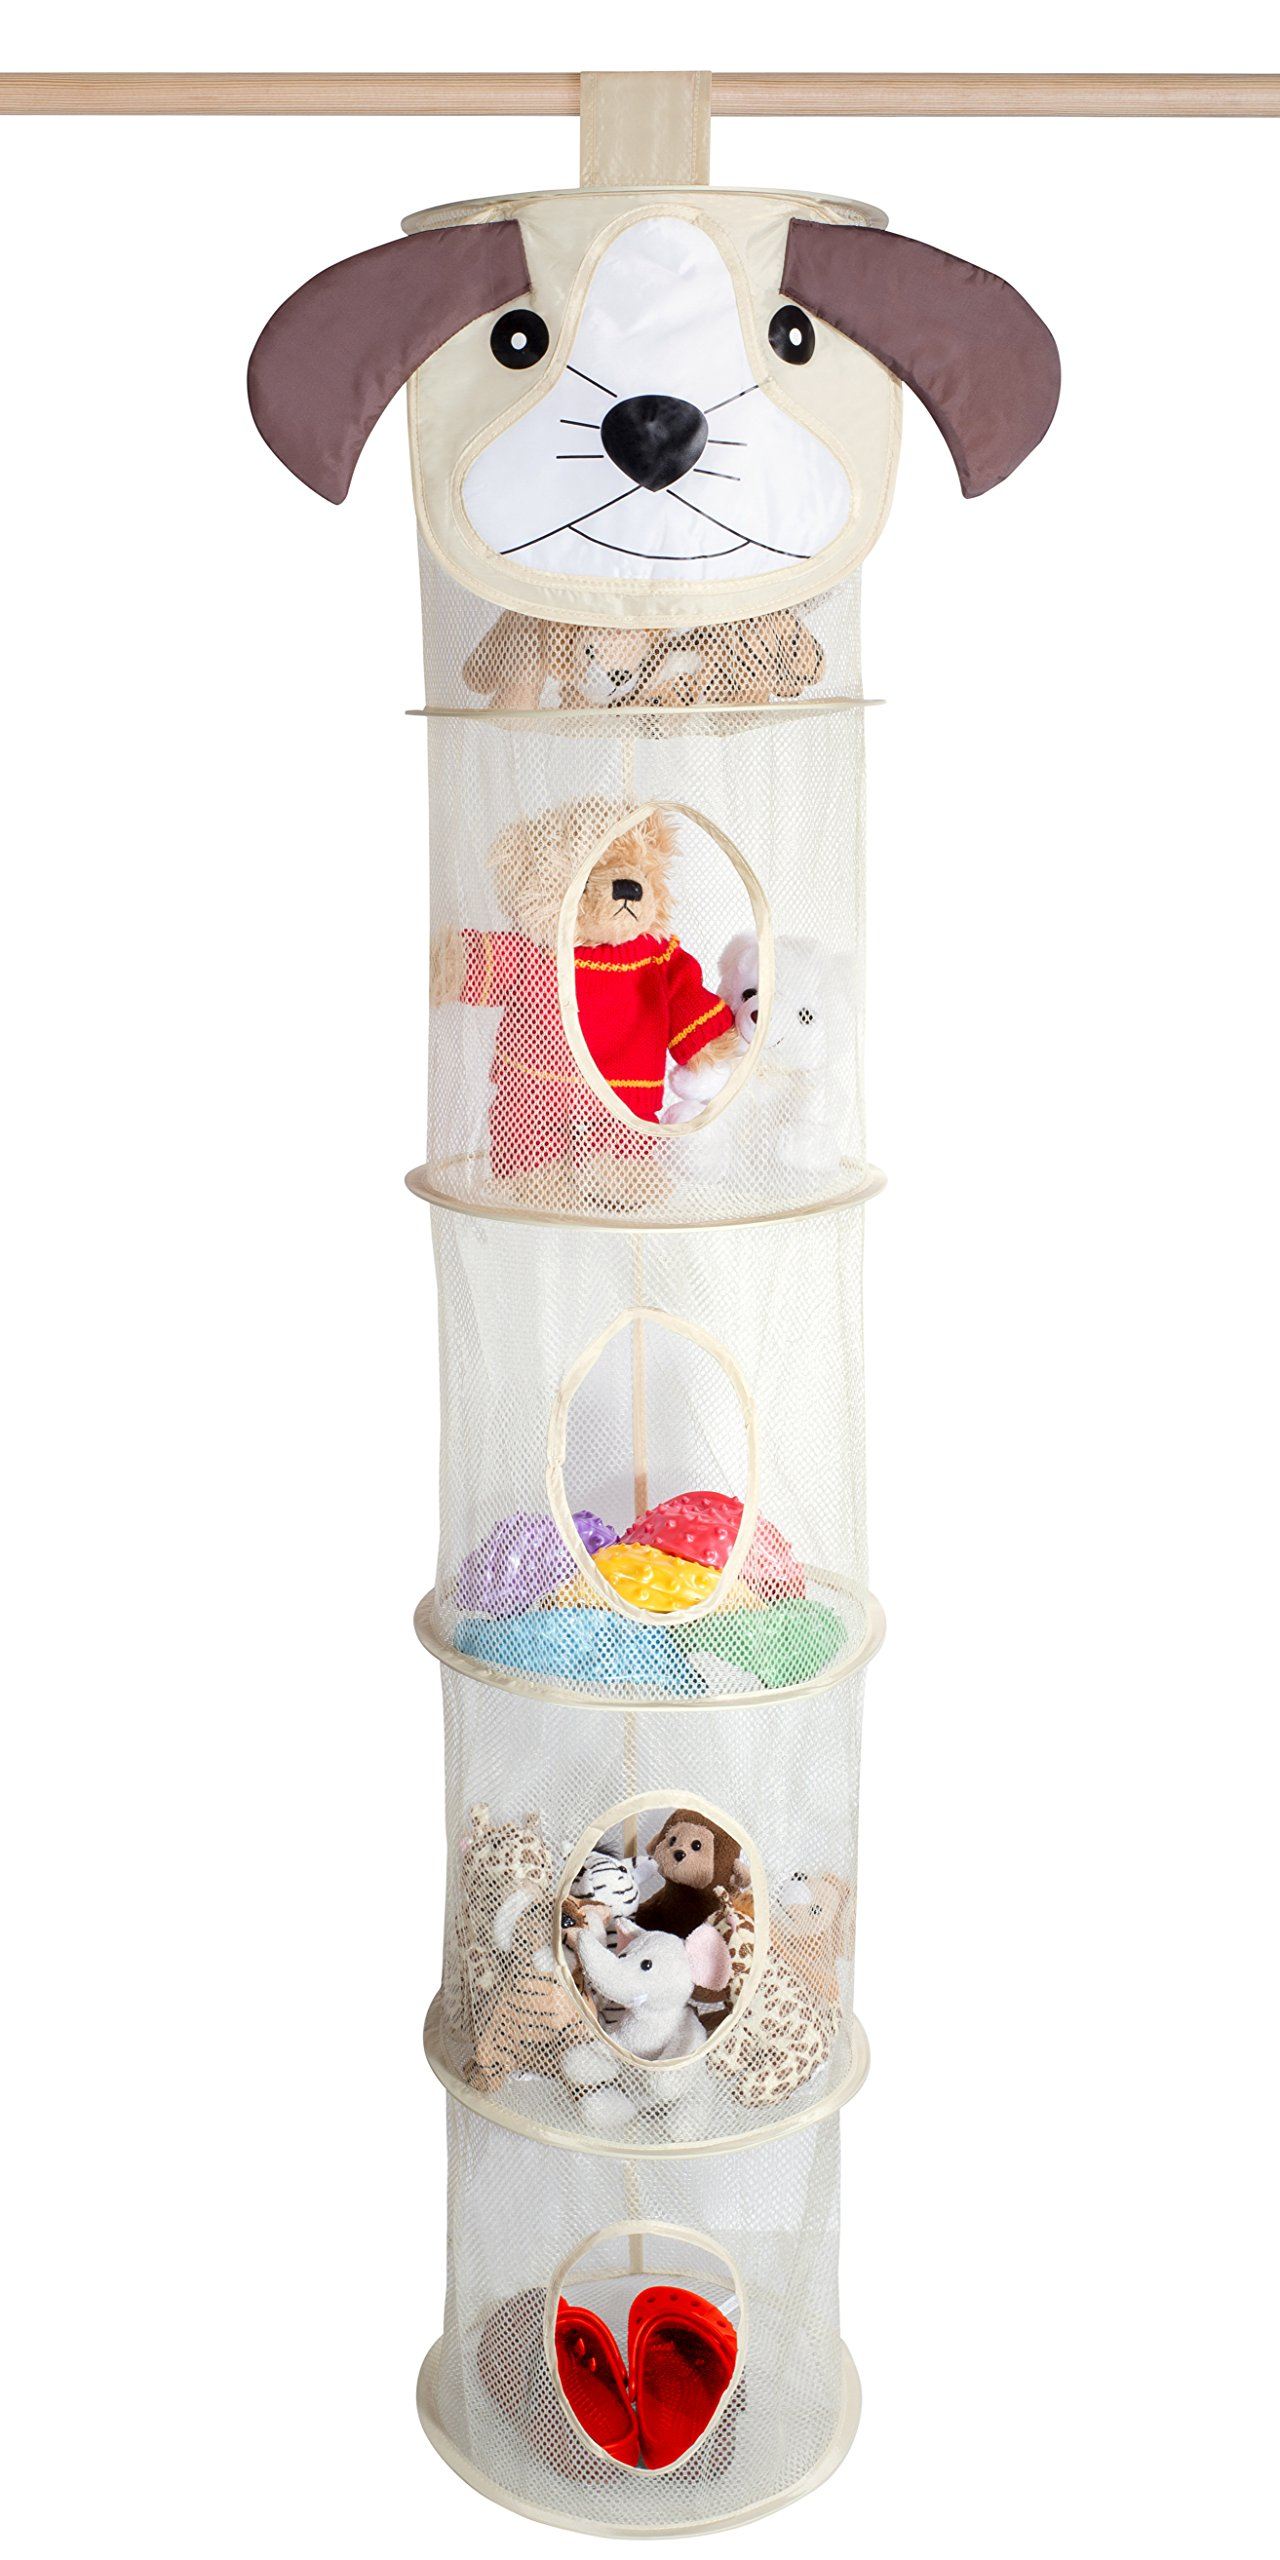 5 Tier Storage Organizer - 12'' X 59'' - Hang in Your Children's Room or Closet for a Fun Way to Organize Kids Toys or Store Gloves, Shawls, Hats and Mittens. Attaches Easily to Any Rod. (Dog)